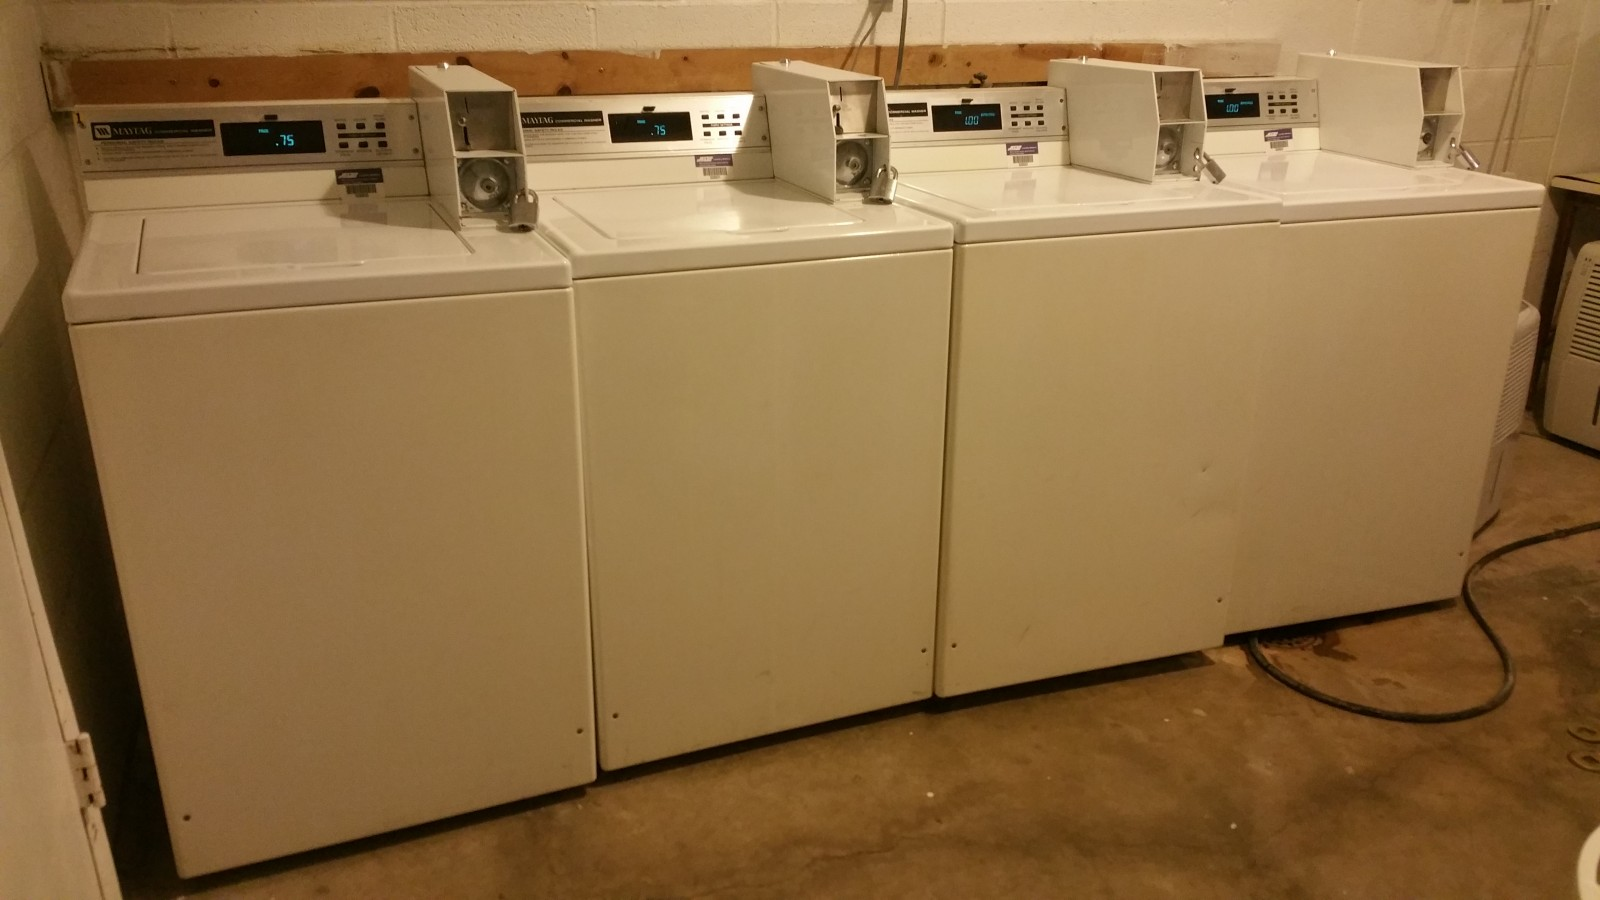 Brust Laundry Room